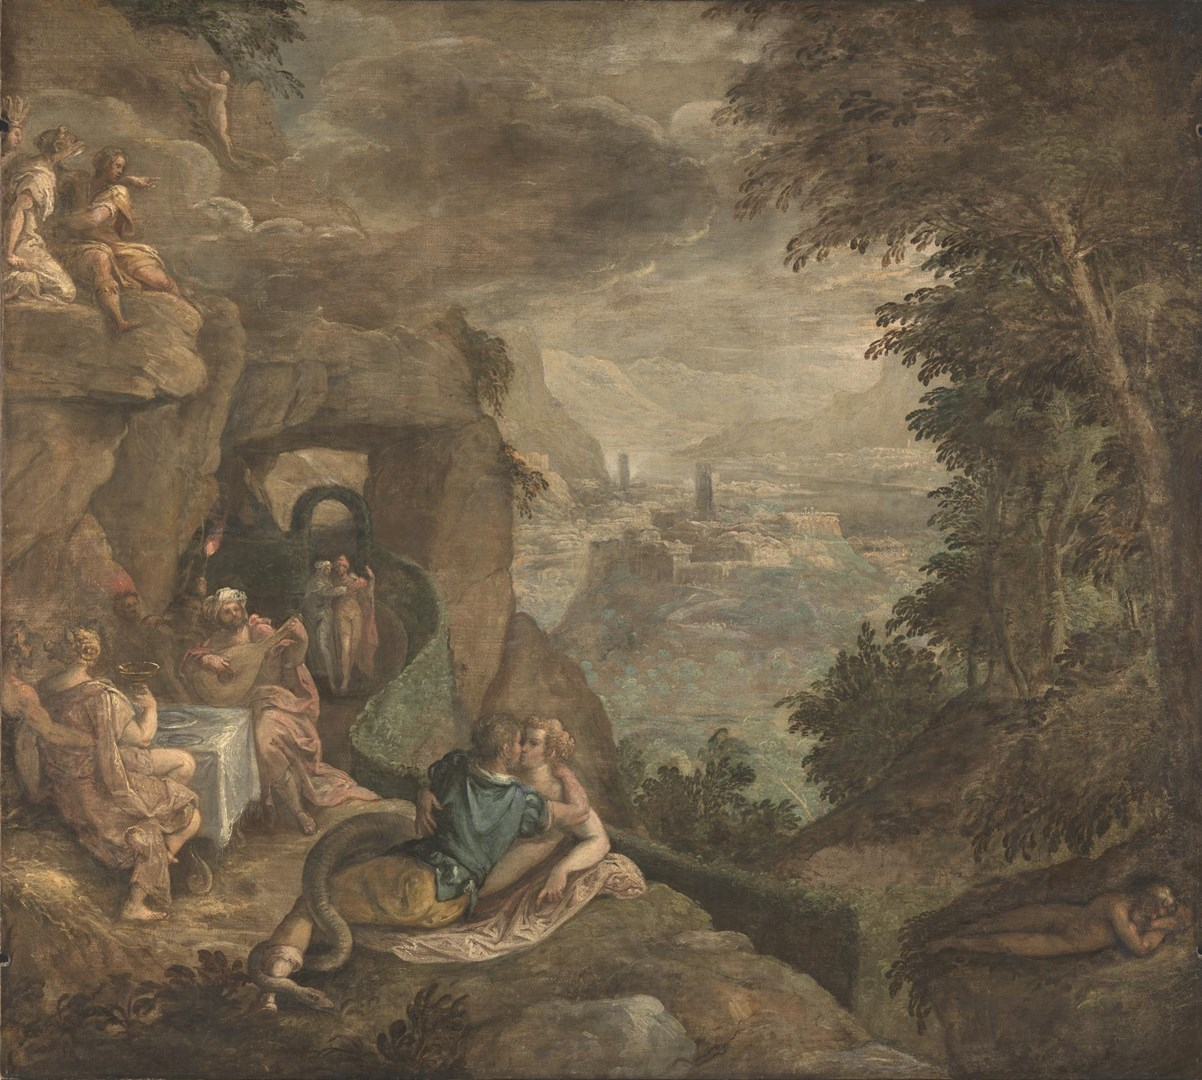 Landscape with a Scene of Enchantment by Paolo Fiammingo